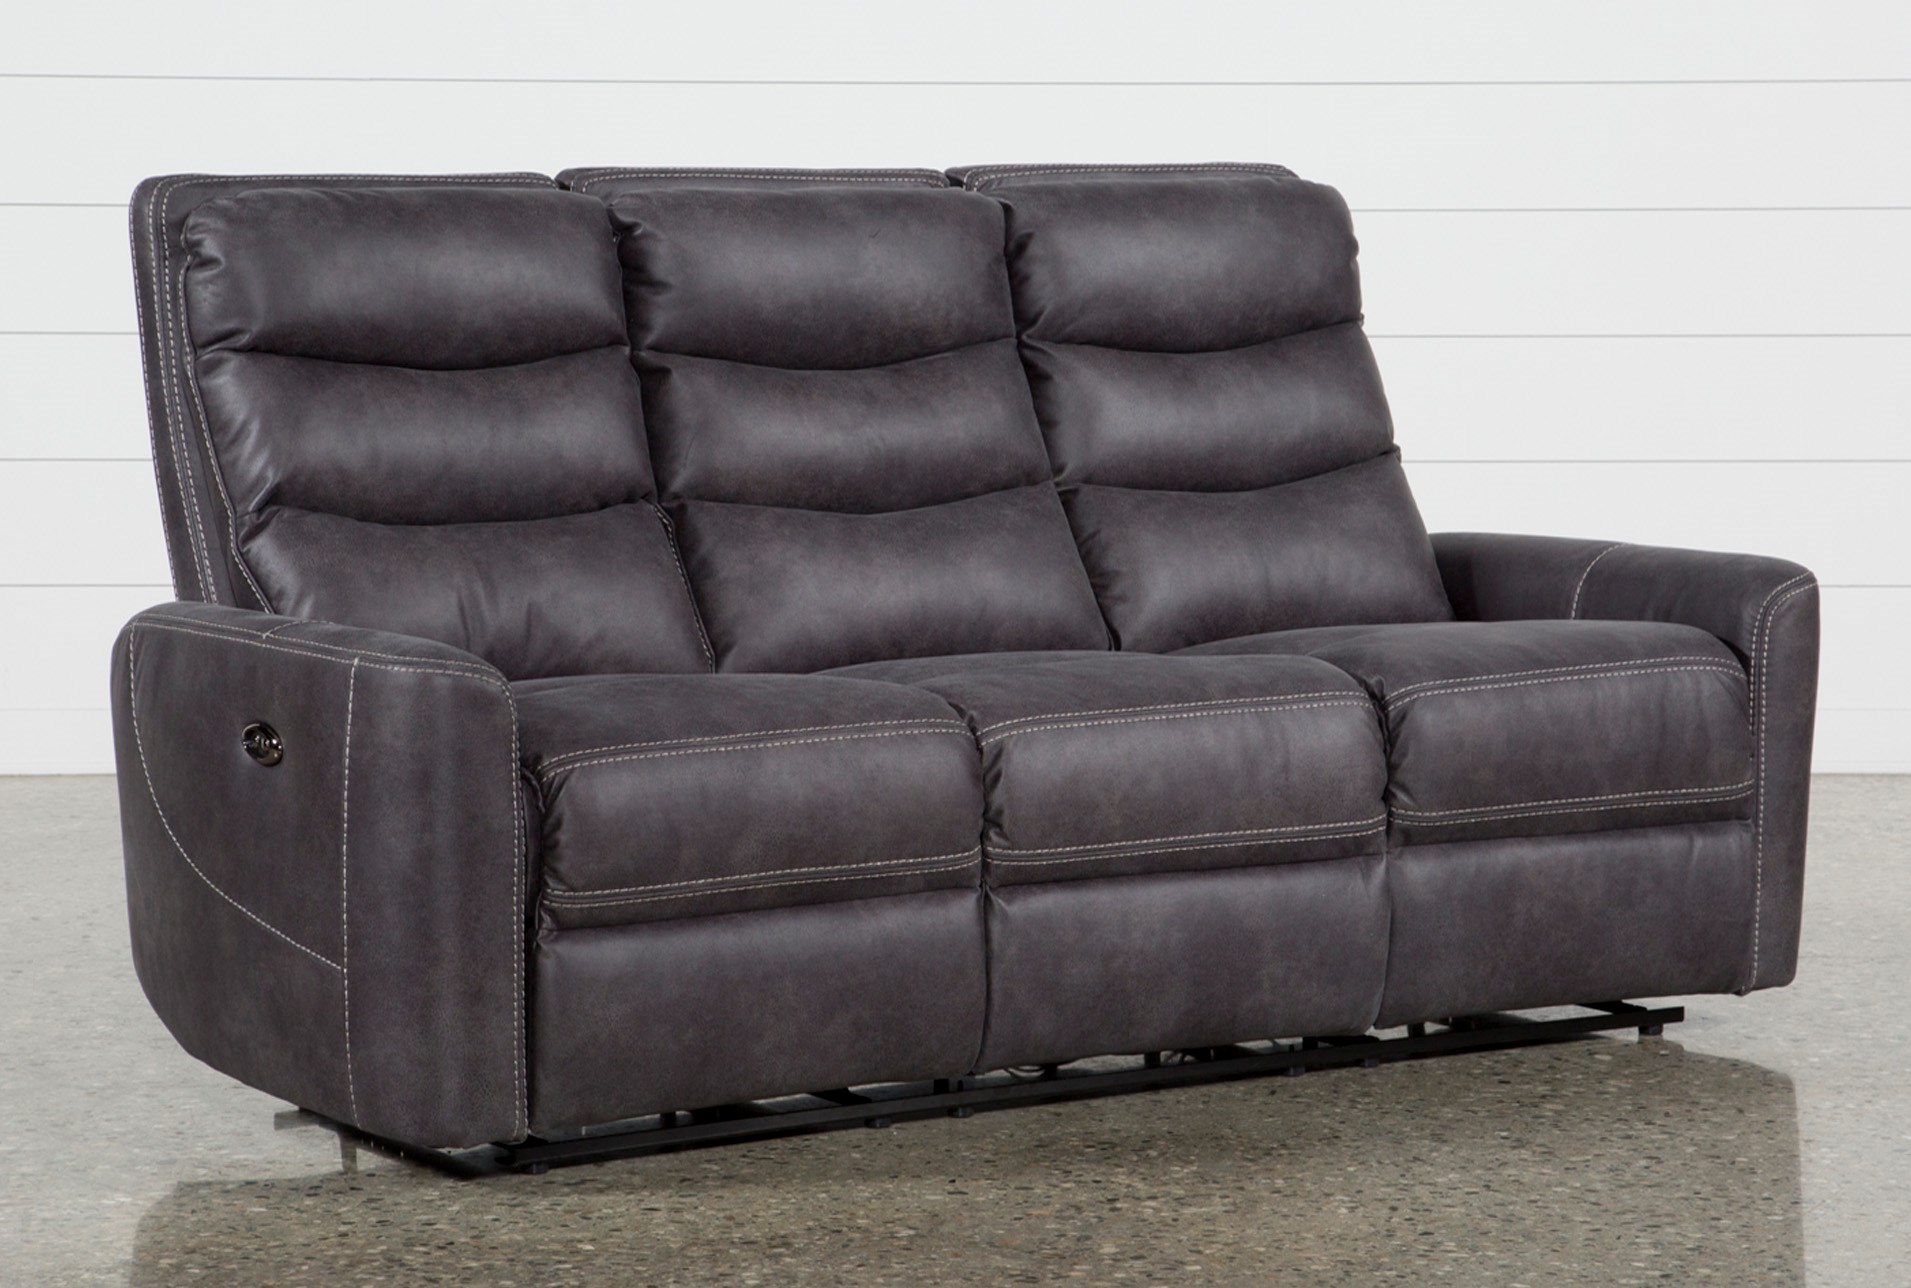 black seater lounge recliner reclines with theatre leather nikki home brand sofa new itm suite